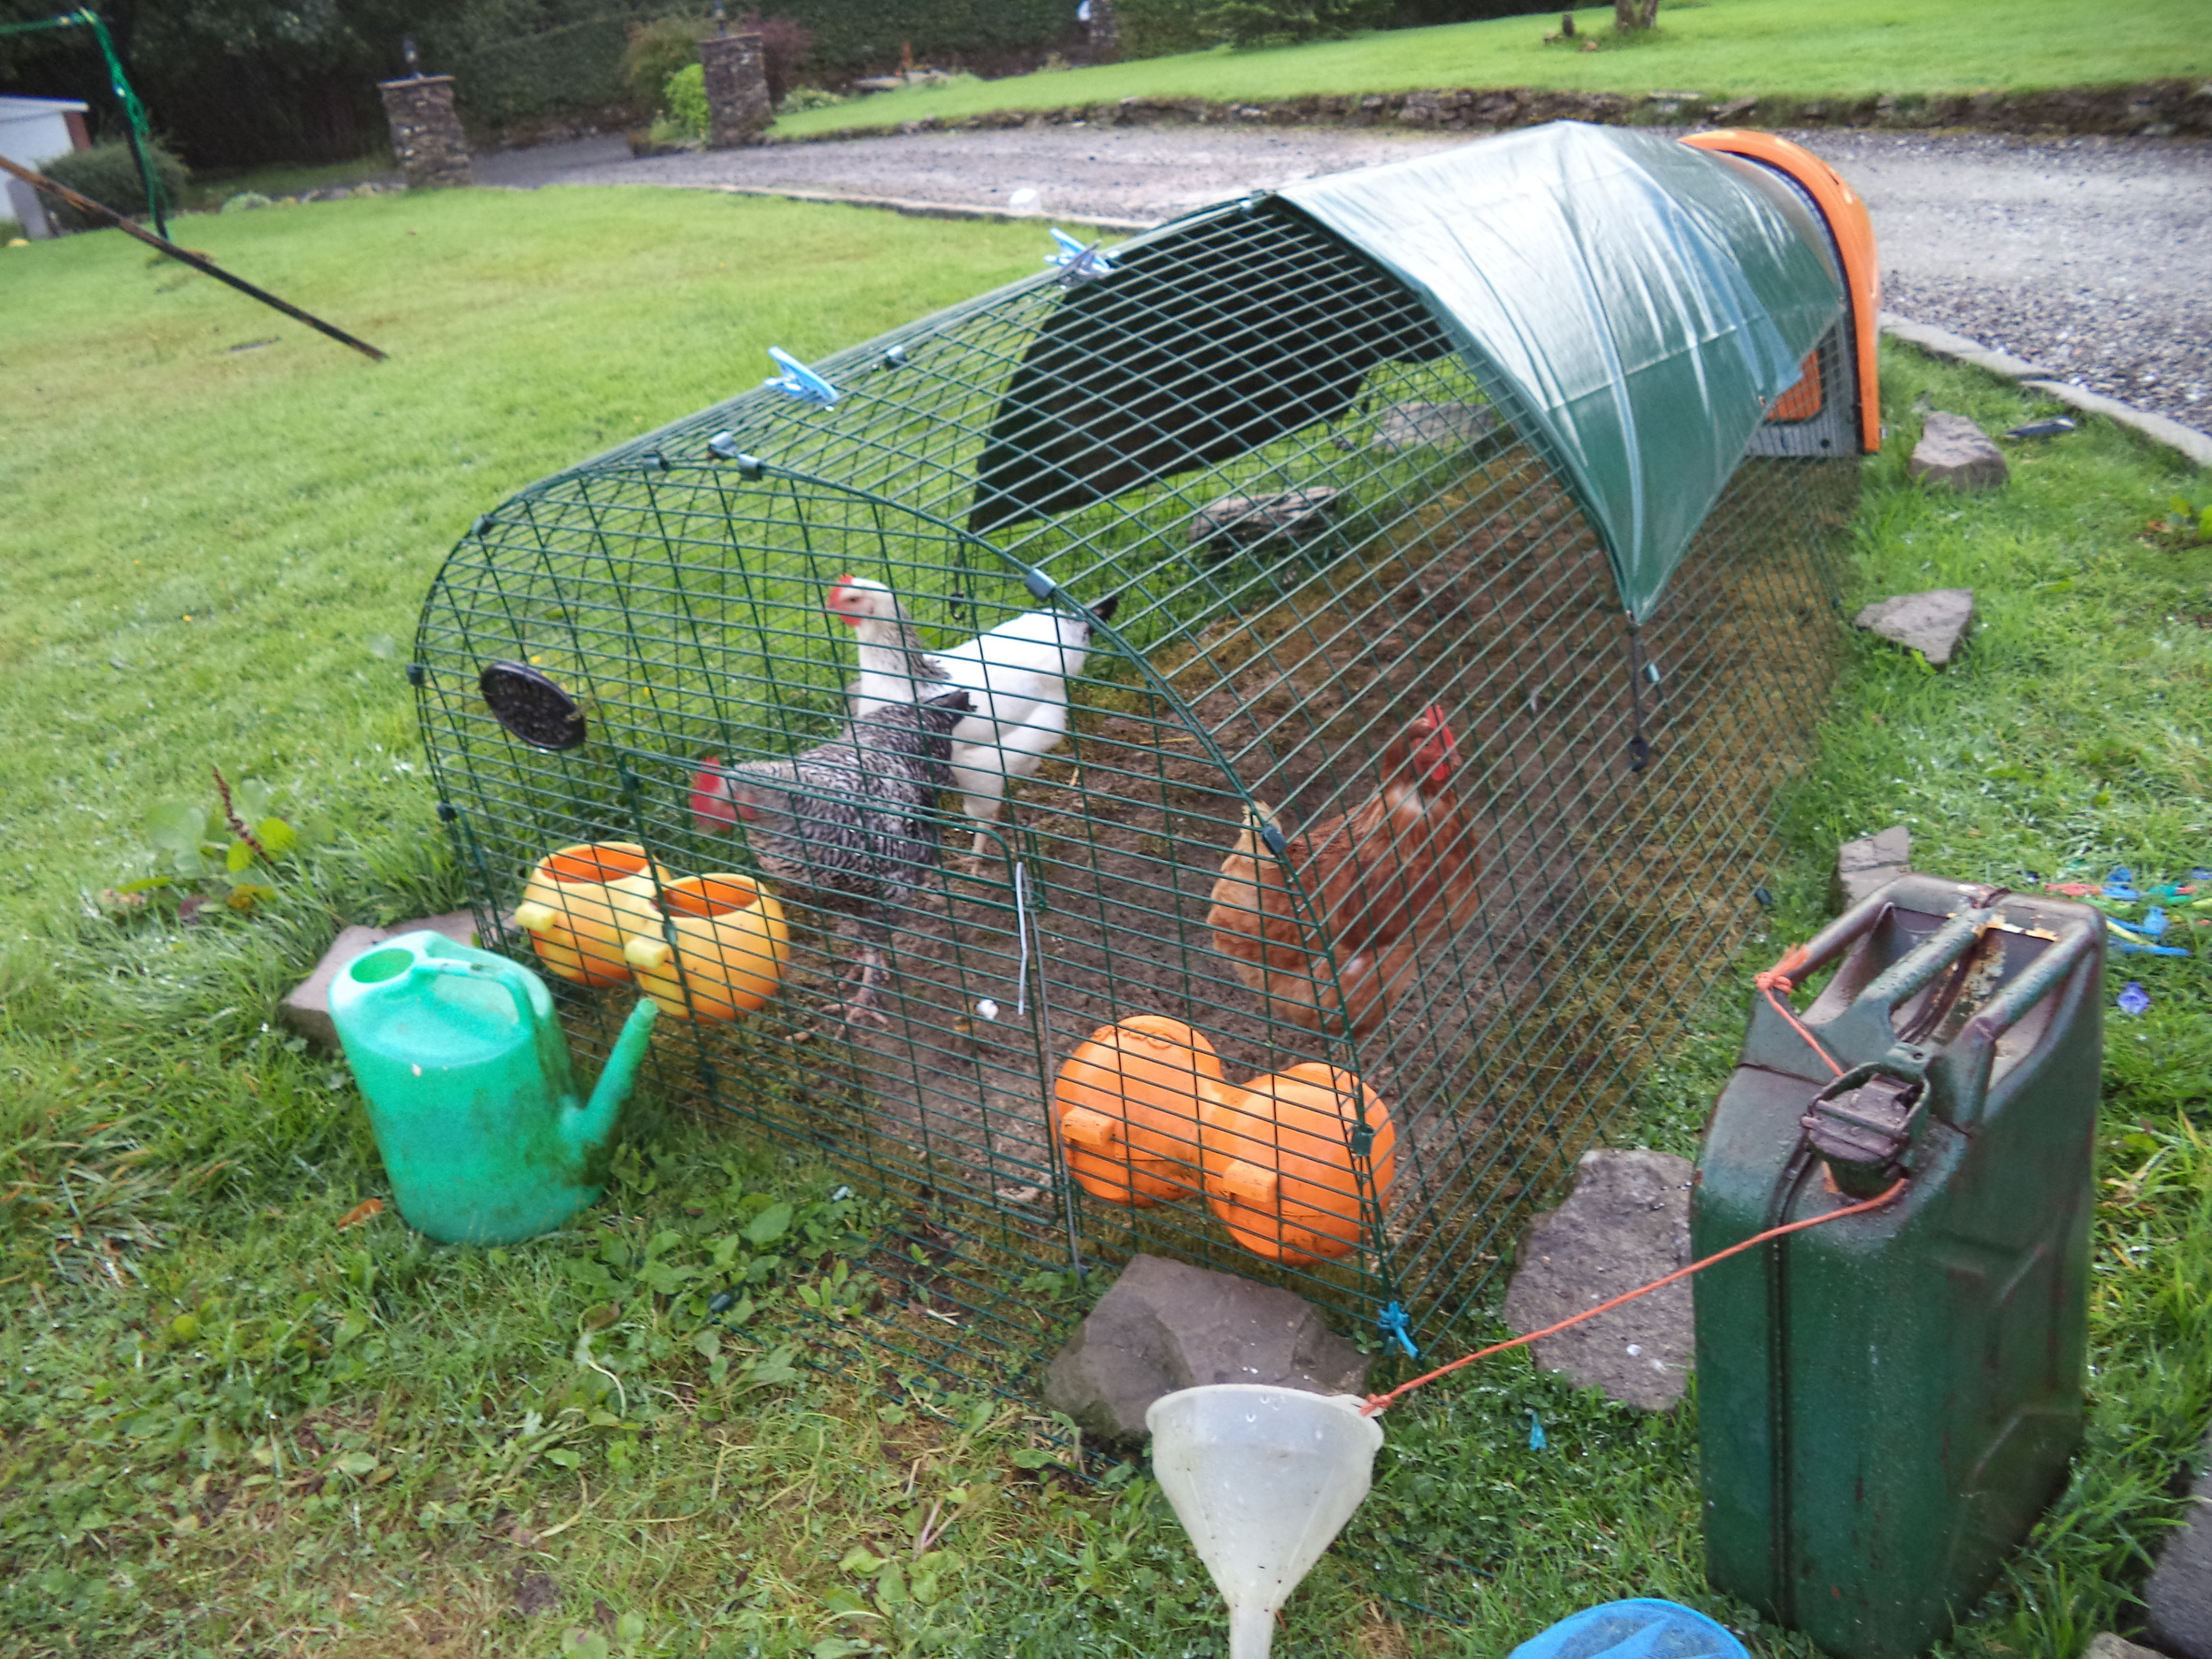 The Chickens in their cool house!